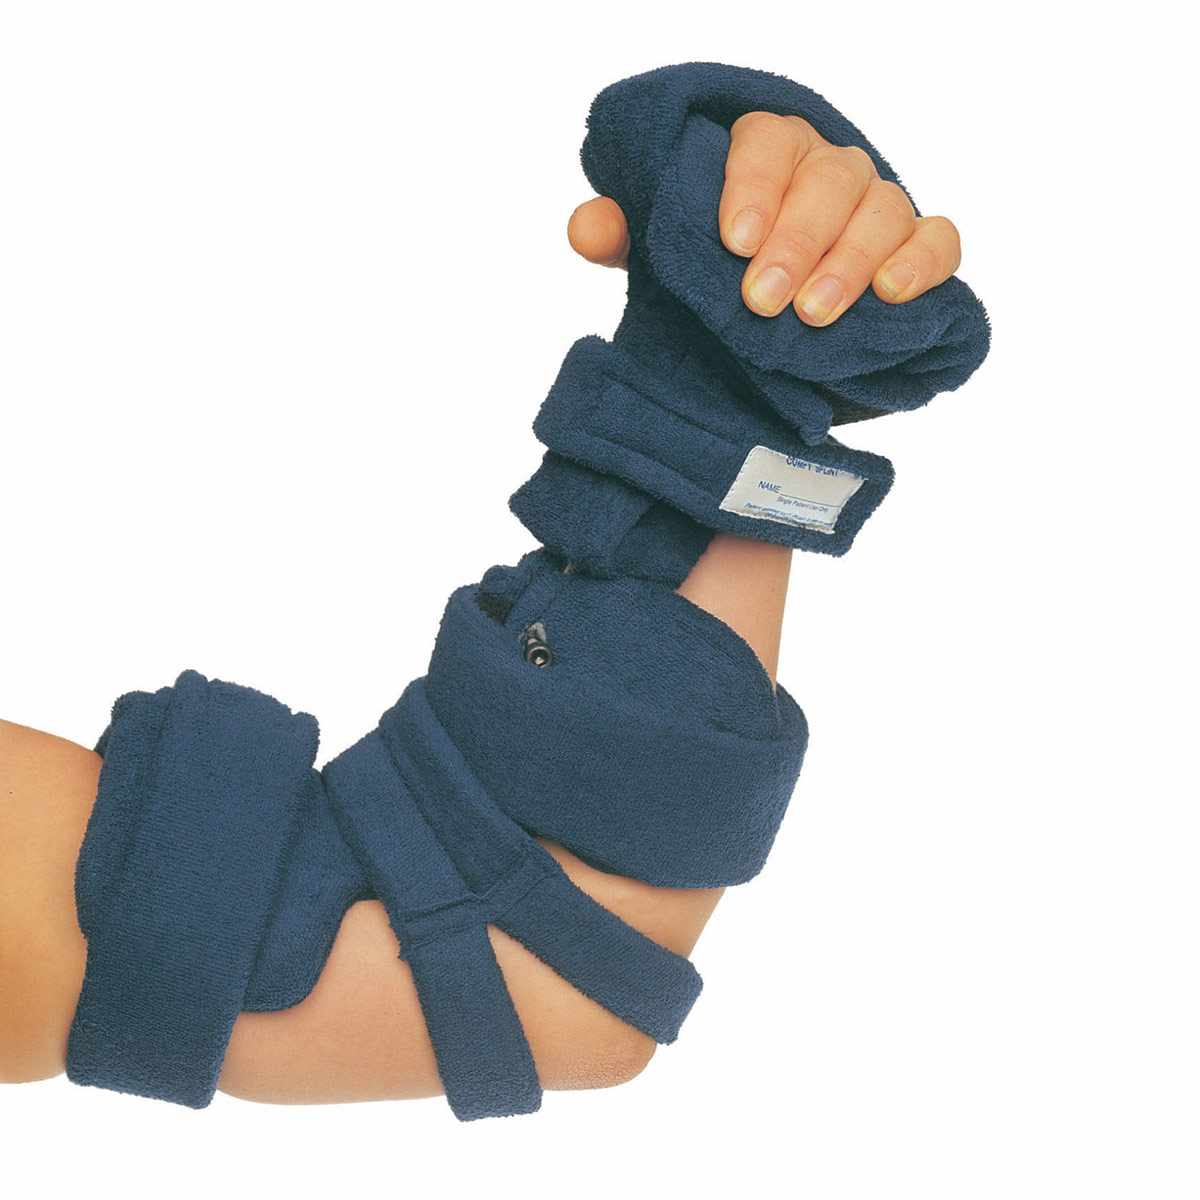 Comfy Elbow and Hand Roll Orthosis